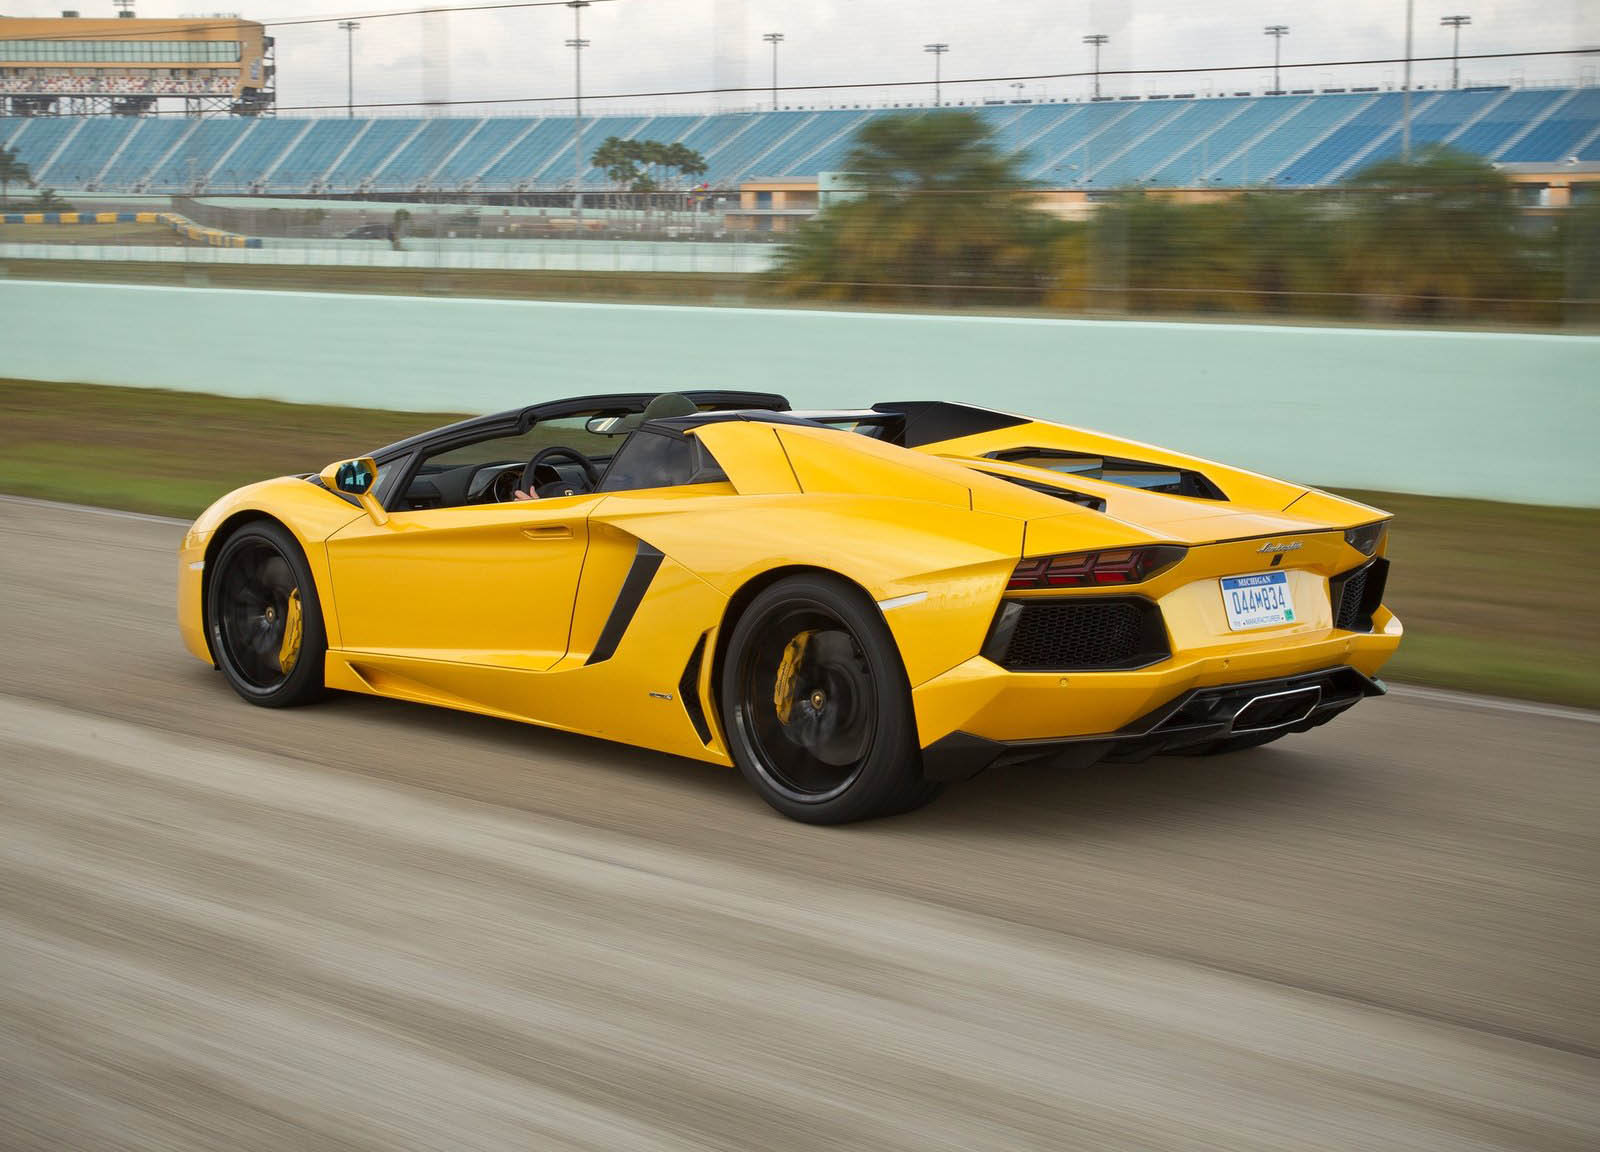 don 39 t overfill your lamborghini aventador or it could catch fire carscoops. Black Bedroom Furniture Sets. Home Design Ideas